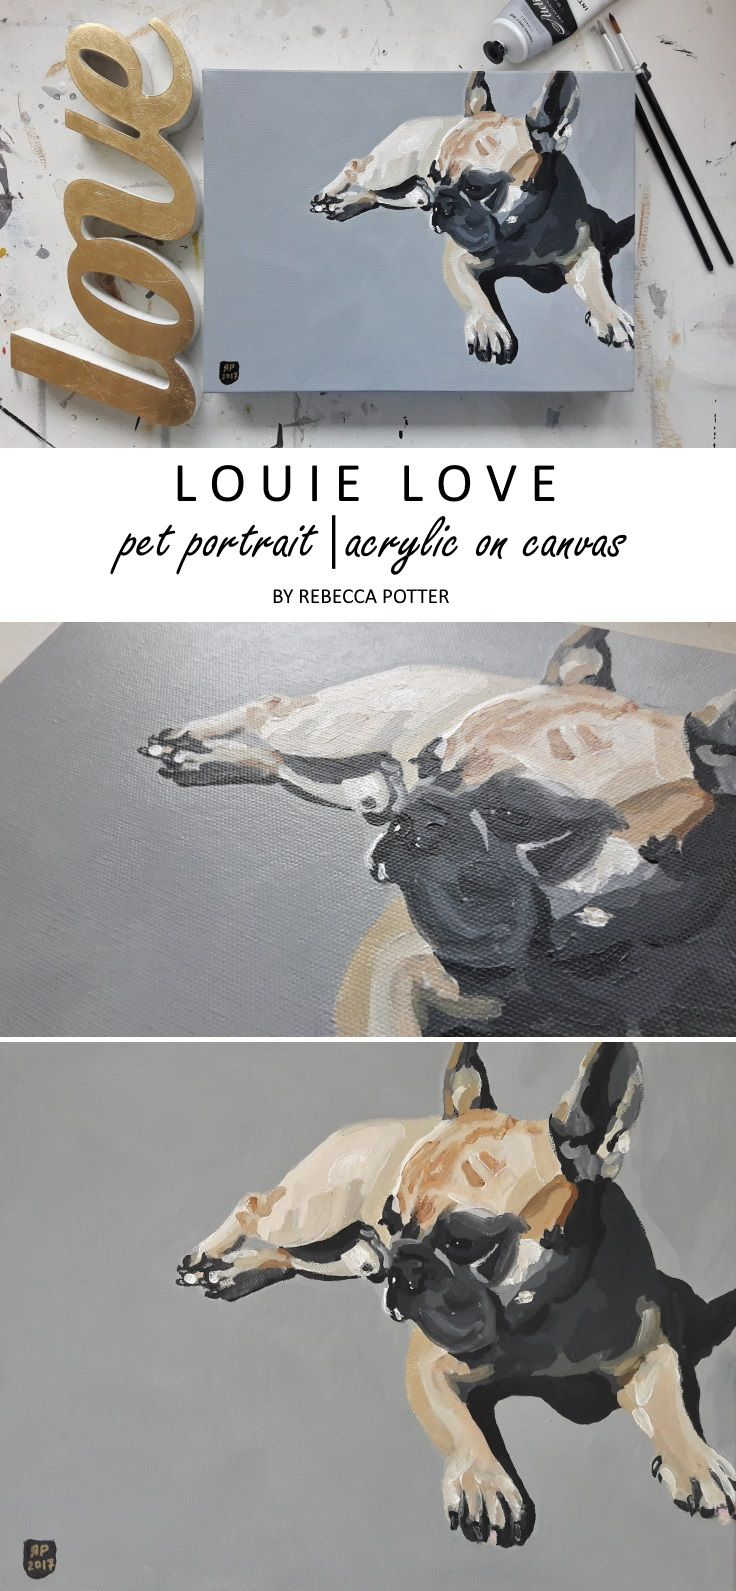 Pet Portrait - Louie Love. Acrylic on Canvas Painting by Rebecca Potter. May 2017. [SOLD]